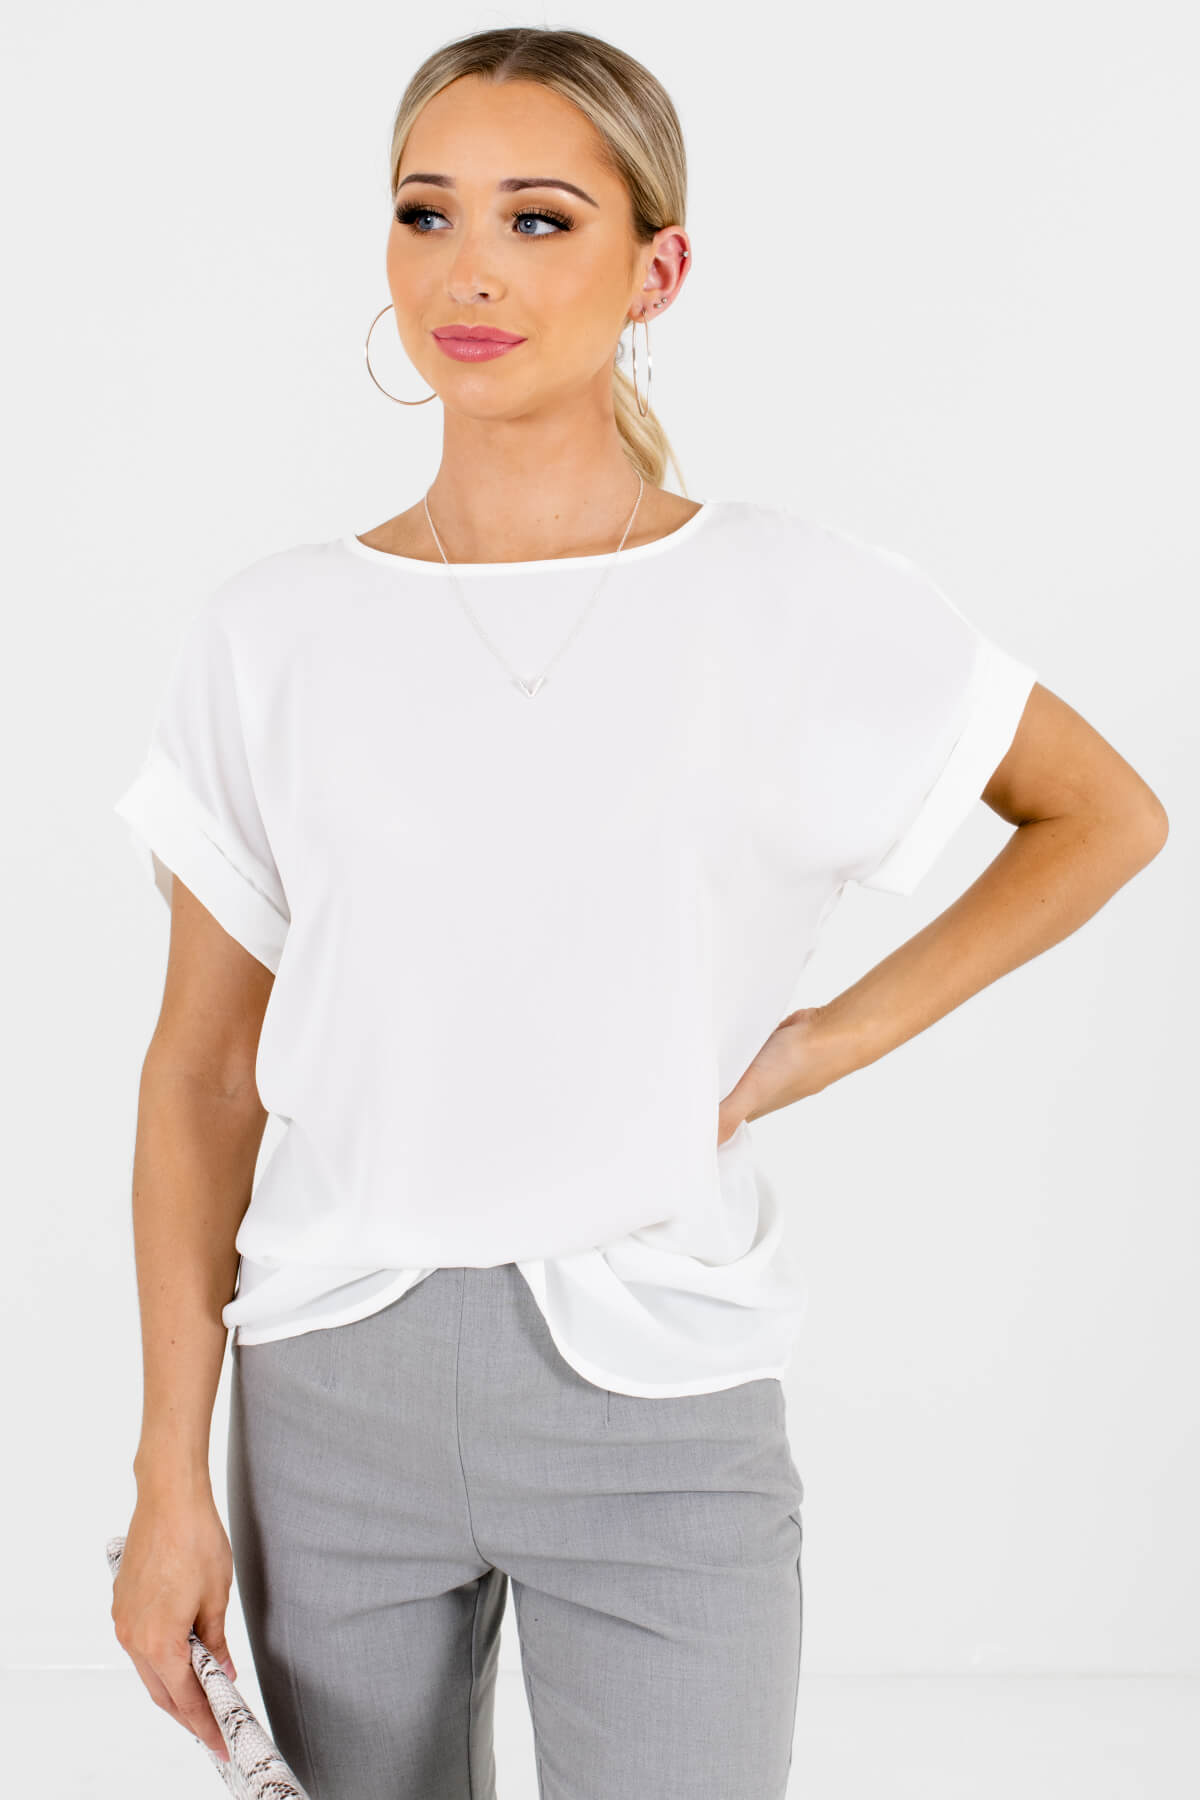 White Lightweight and Flowy Boutique Blouses for Women